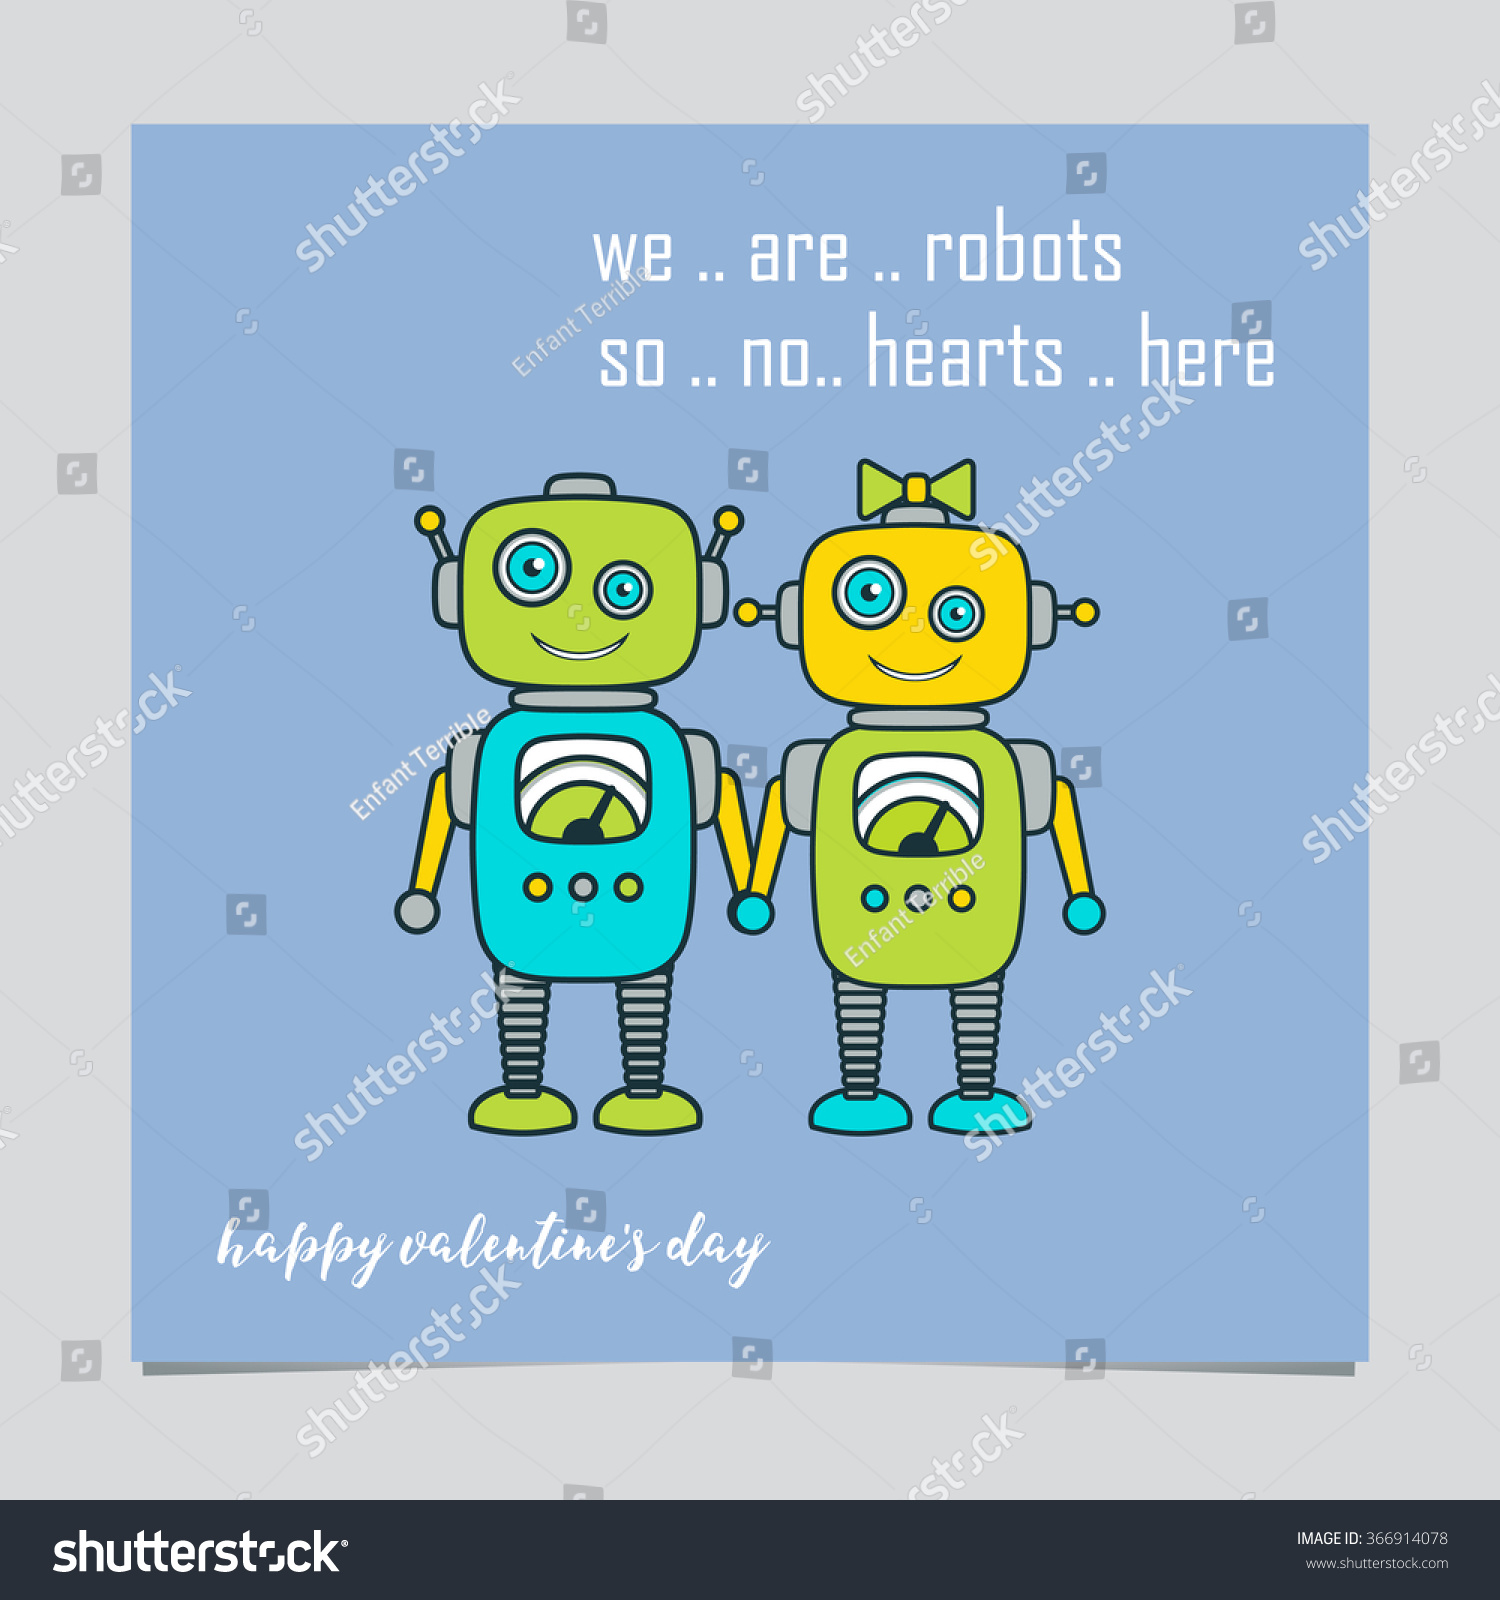 Happy valentines day greeting card design stock vector 366914078 happy valentines day greeting card design template with cute boy girl robot cartoon characters kristyandbryce Gallery